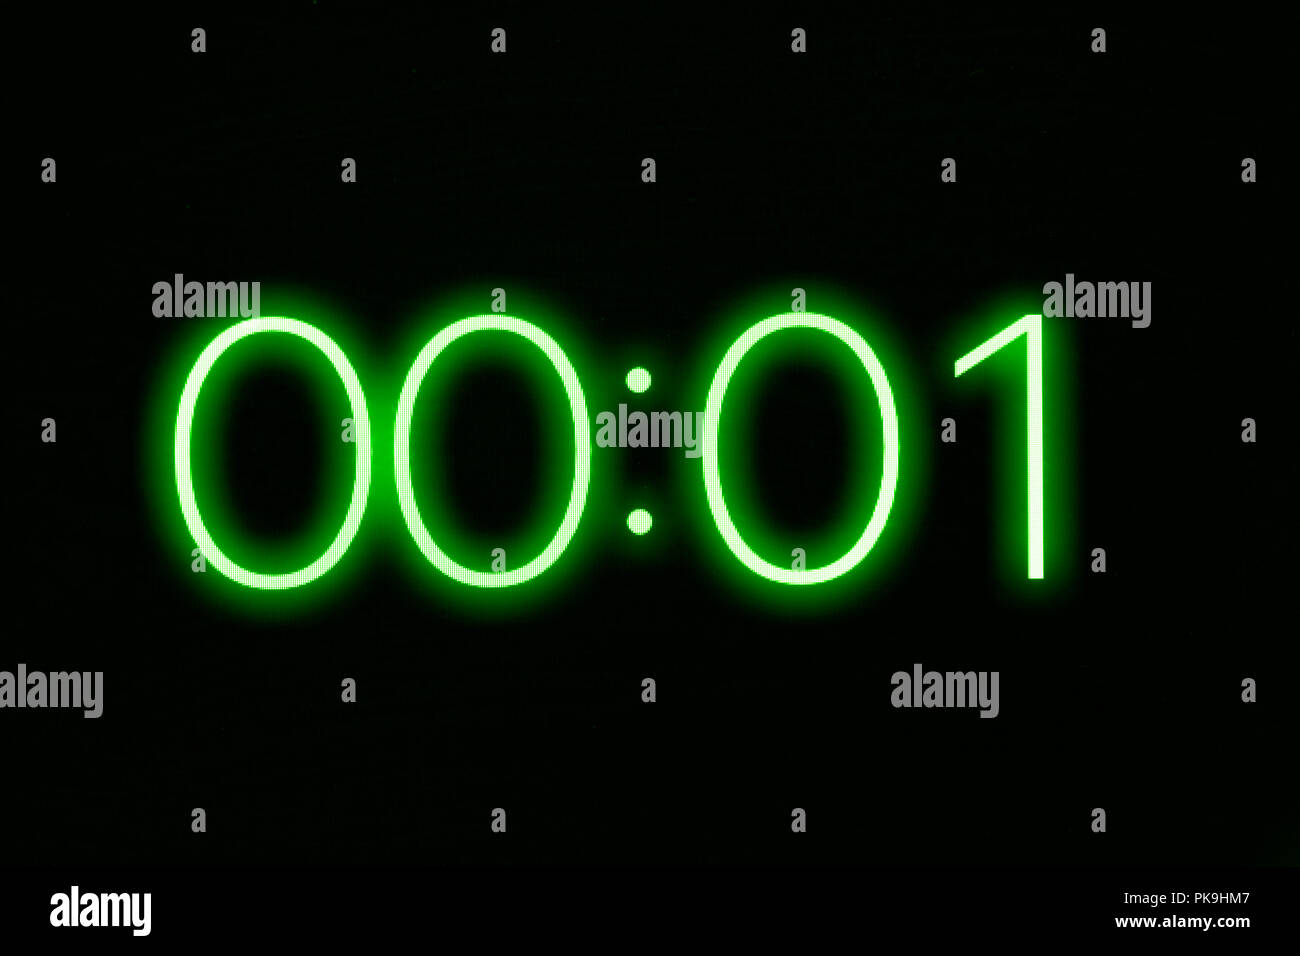 Digital clock timer stopwatch display showing 1 one second remaining. Emergency, urgency, out of time concept. - Stock Image